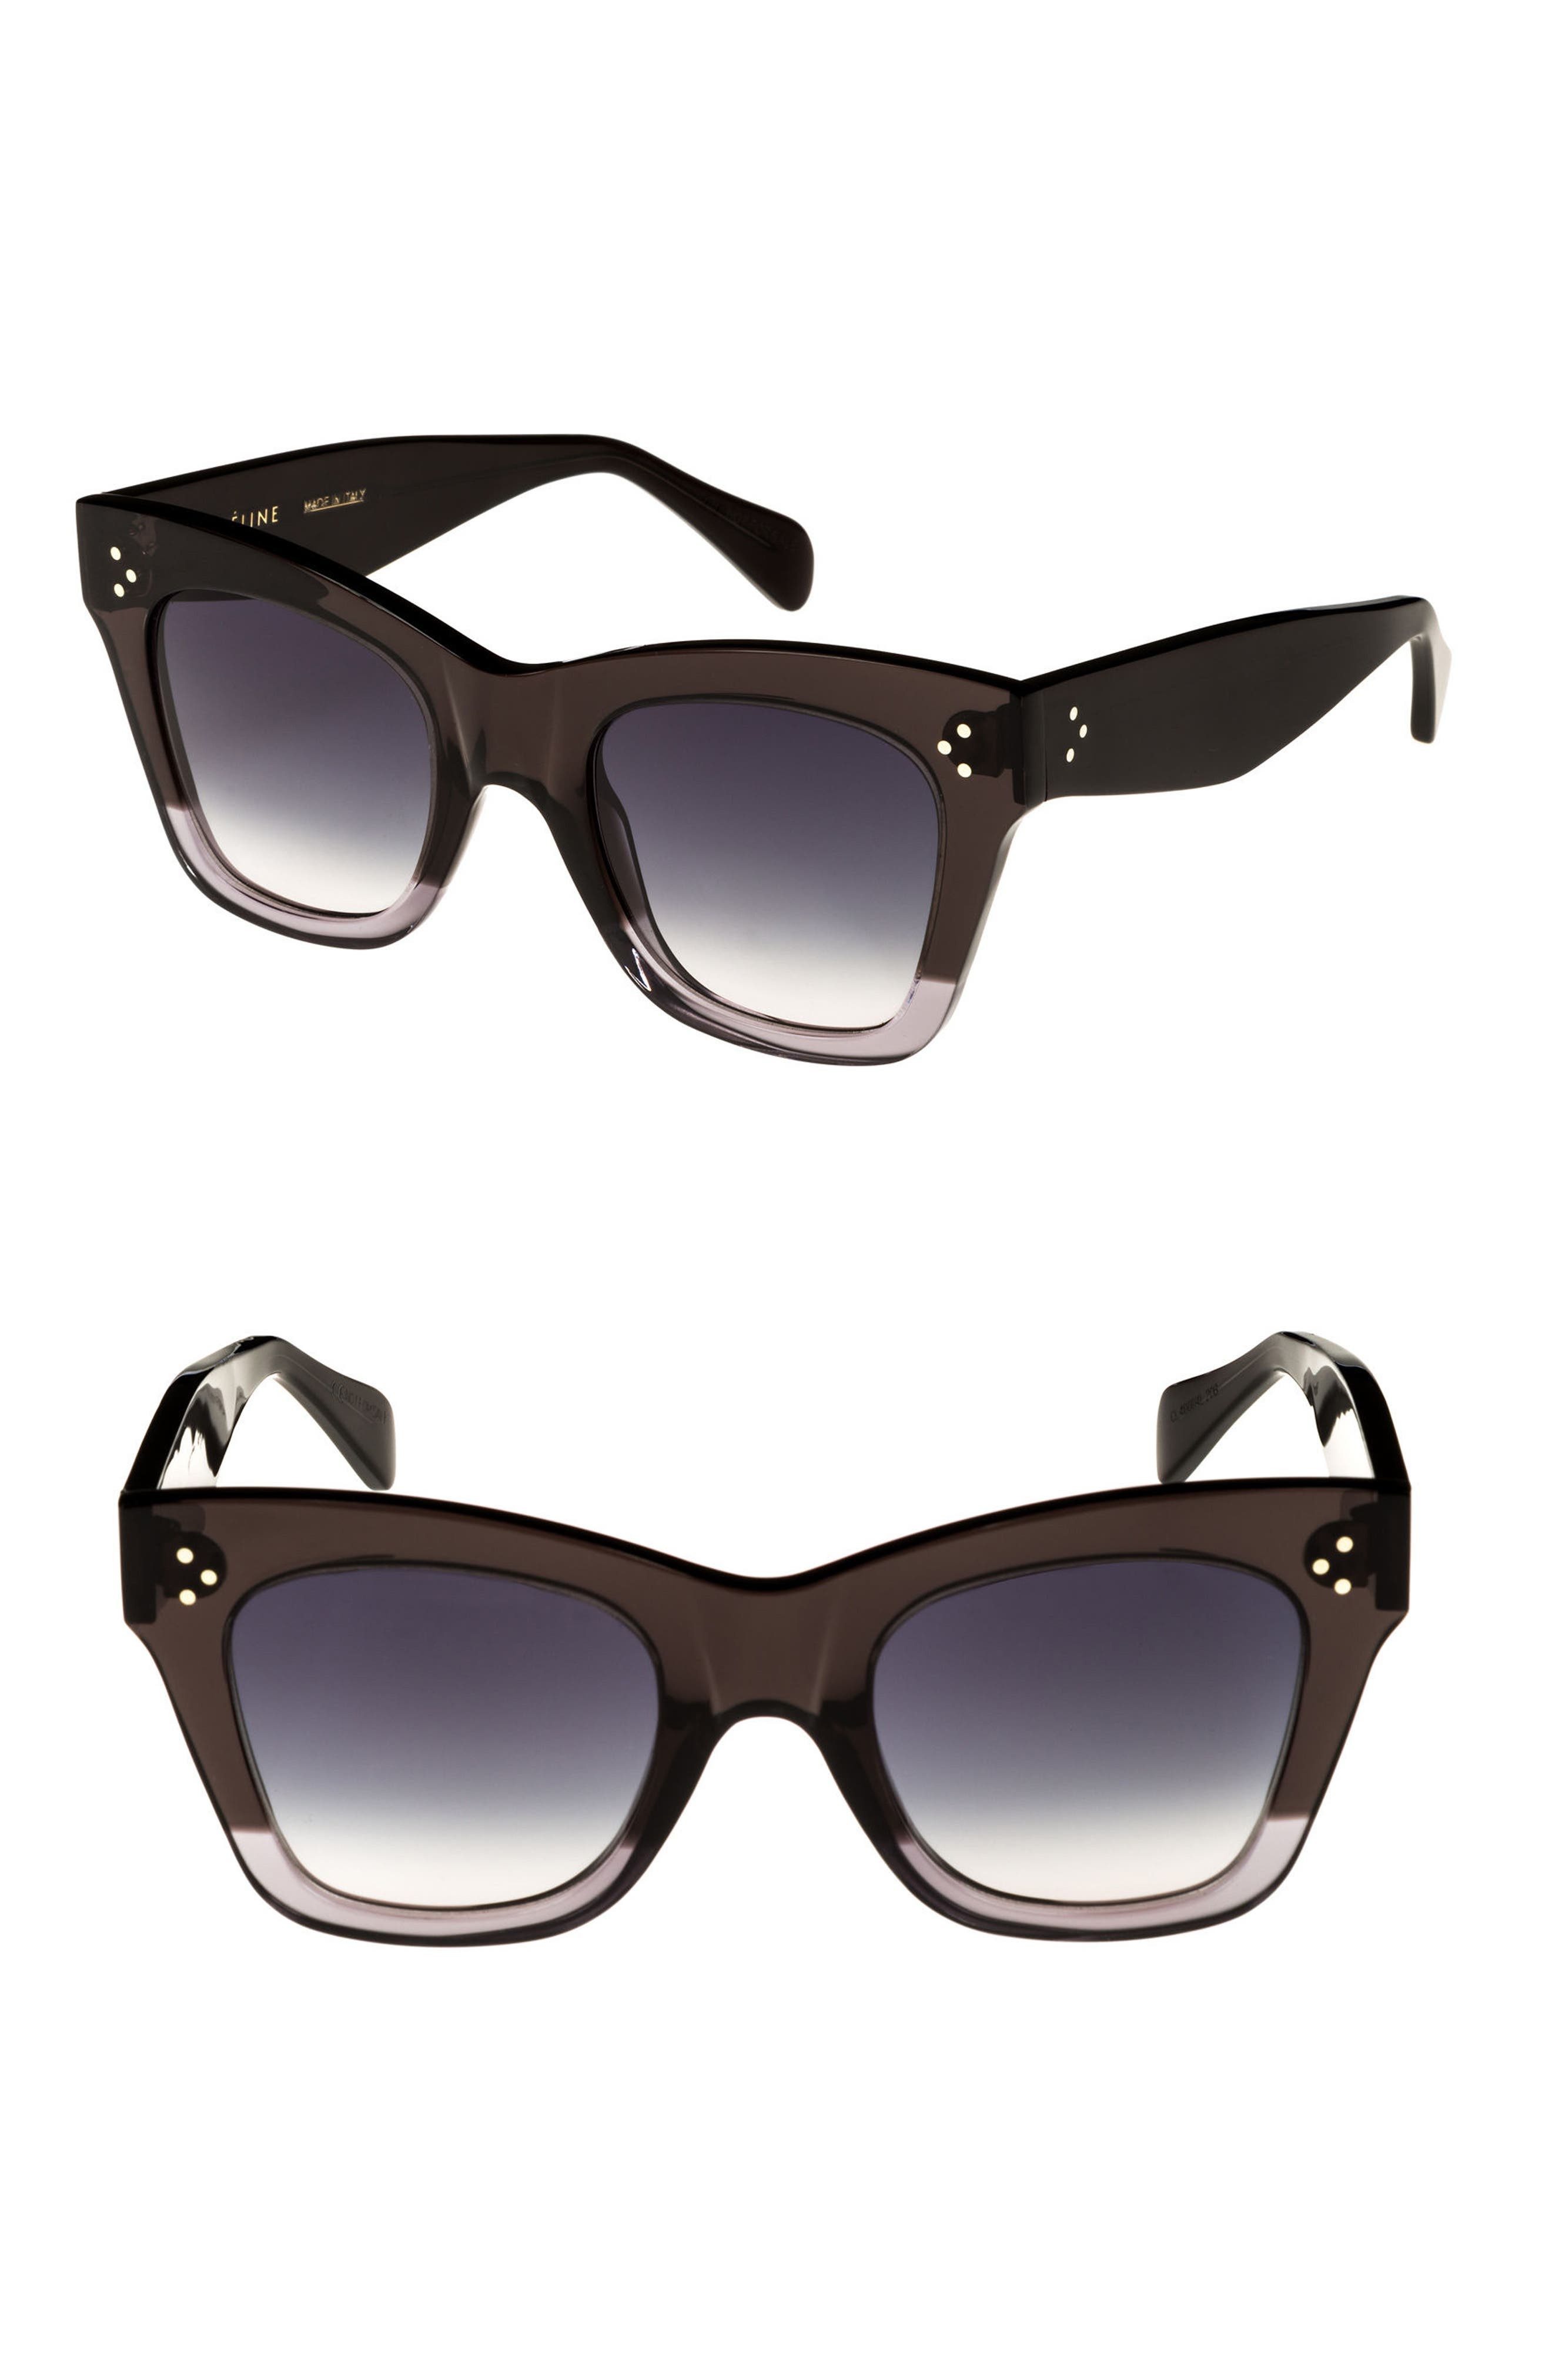 50mm Gradient Butterfly Sunglasses,                             Main thumbnail 1, color,                             Dark Grey/ Smoke